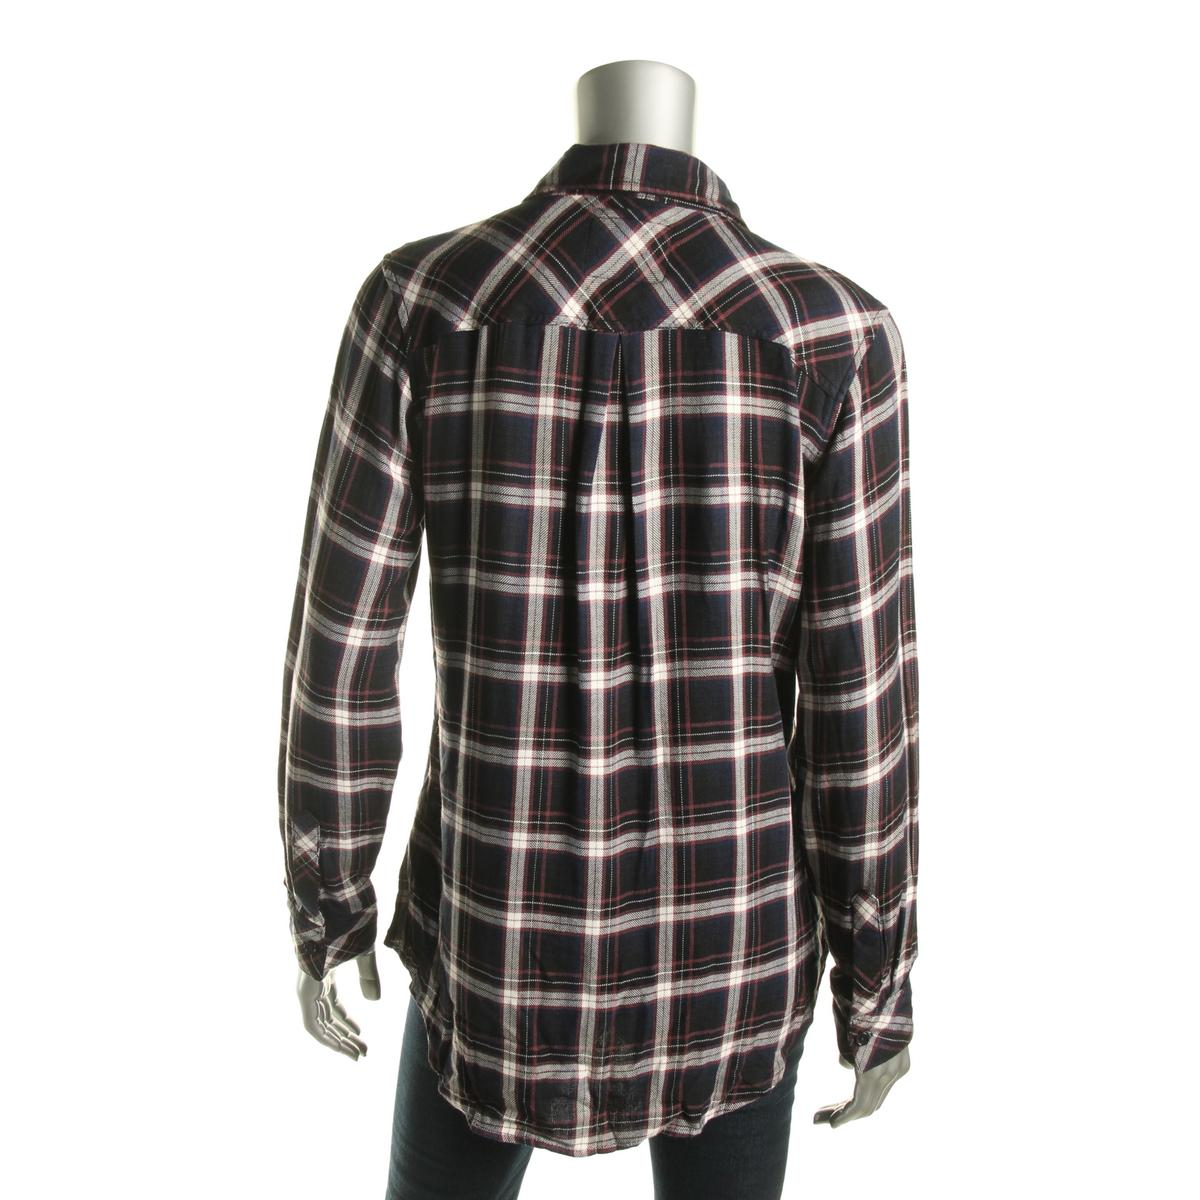 Rails 5268 Womens Plaid Collared Pocketed Button Down Top